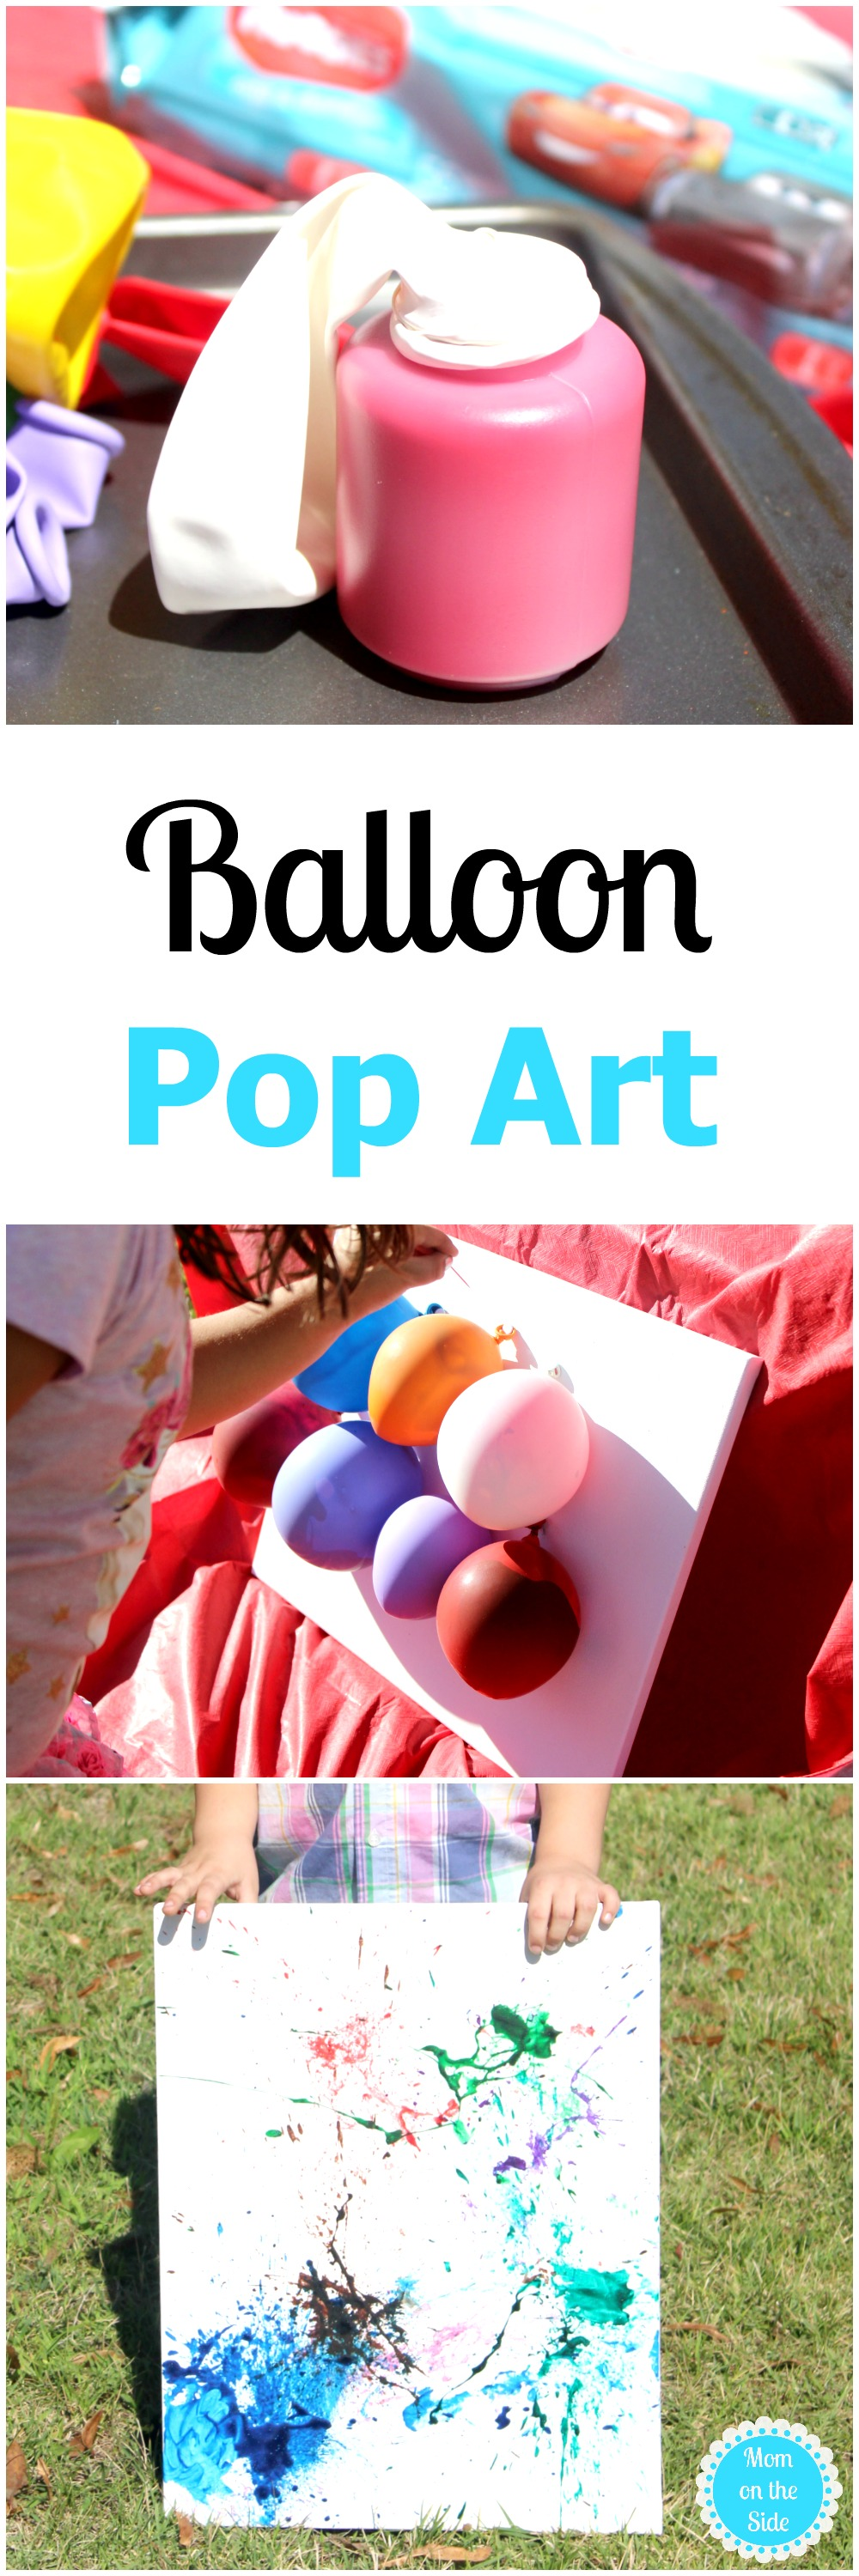 Balloon Pop Art is a fun craft for kids! This DIY art project makes for messy outdoor fun!